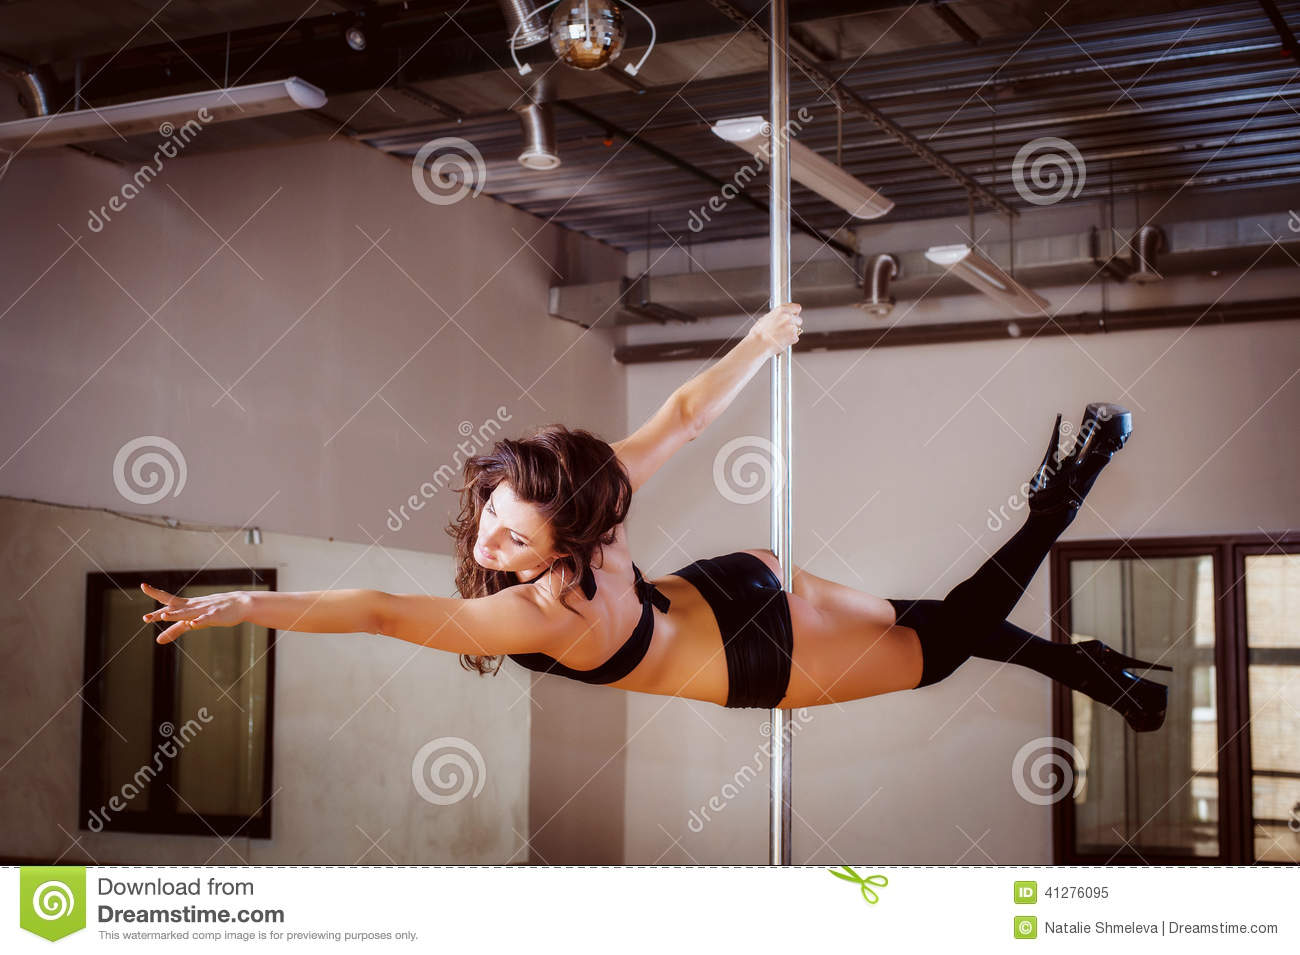 A young dancer dancing between a blowjob and a saw - 4 5